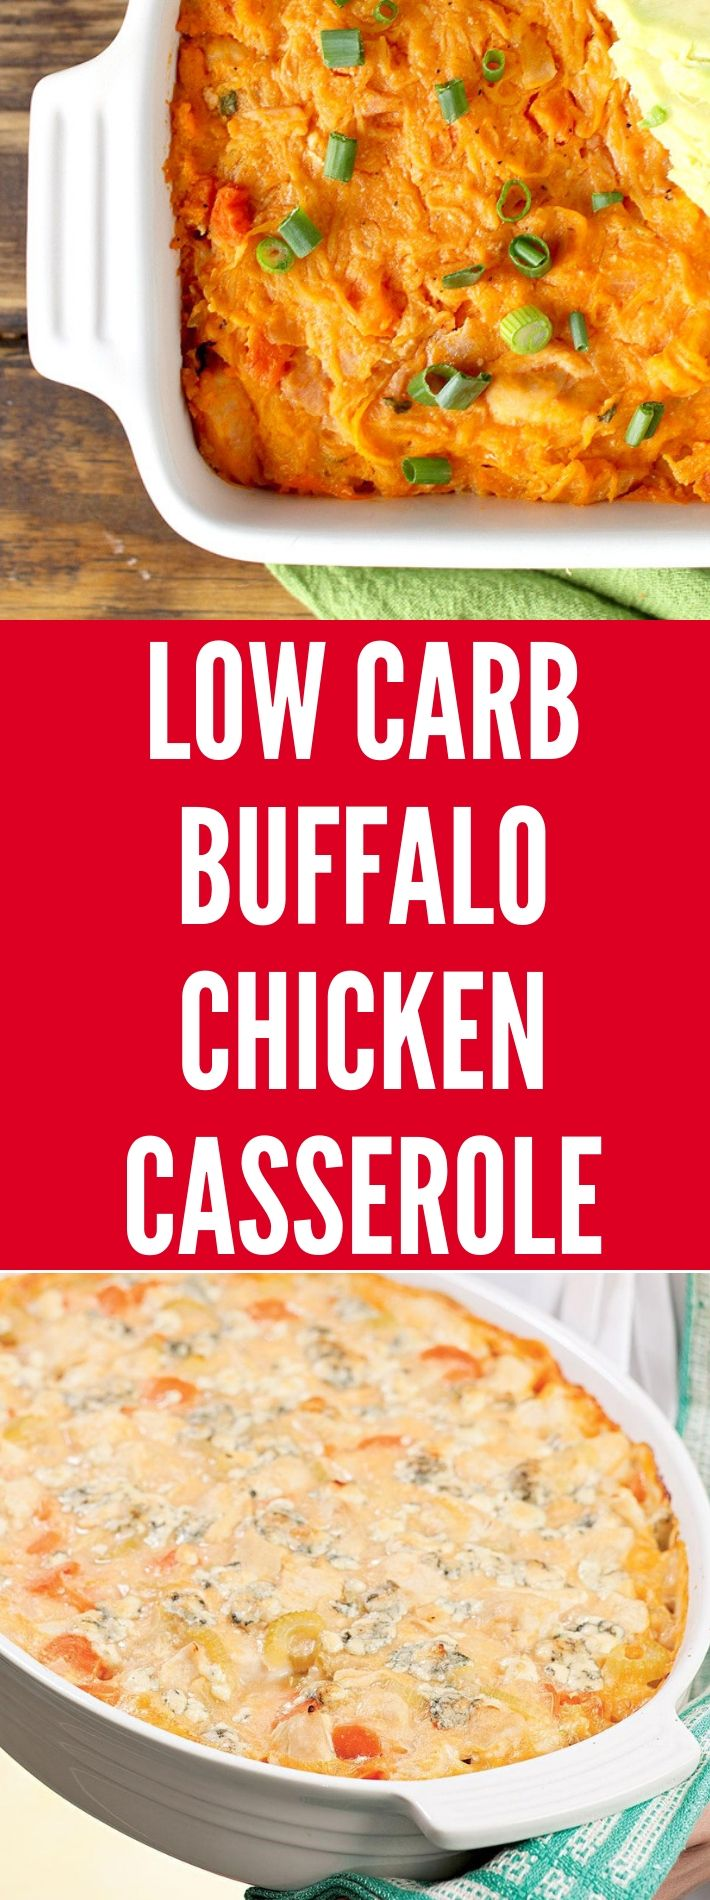 LOW CARB BUFFALO CHICKEN CASSEROLE #buffalochickennachos